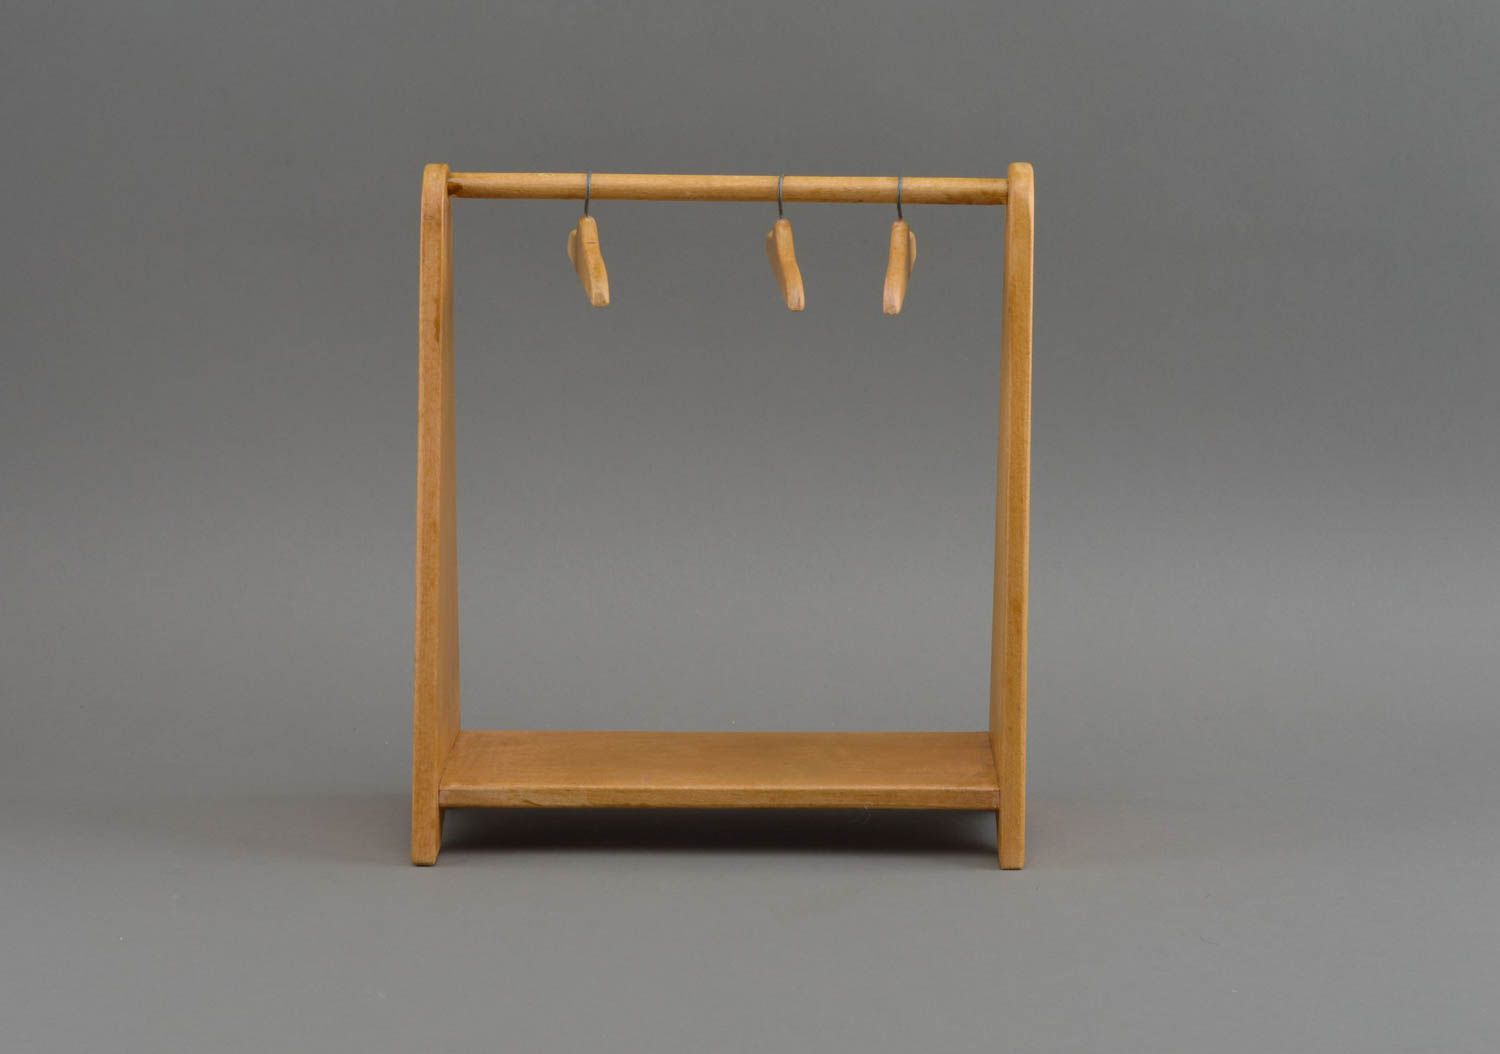 Toy stand for clothes unusual decorative hangers home decor accessory - MADEheart.com